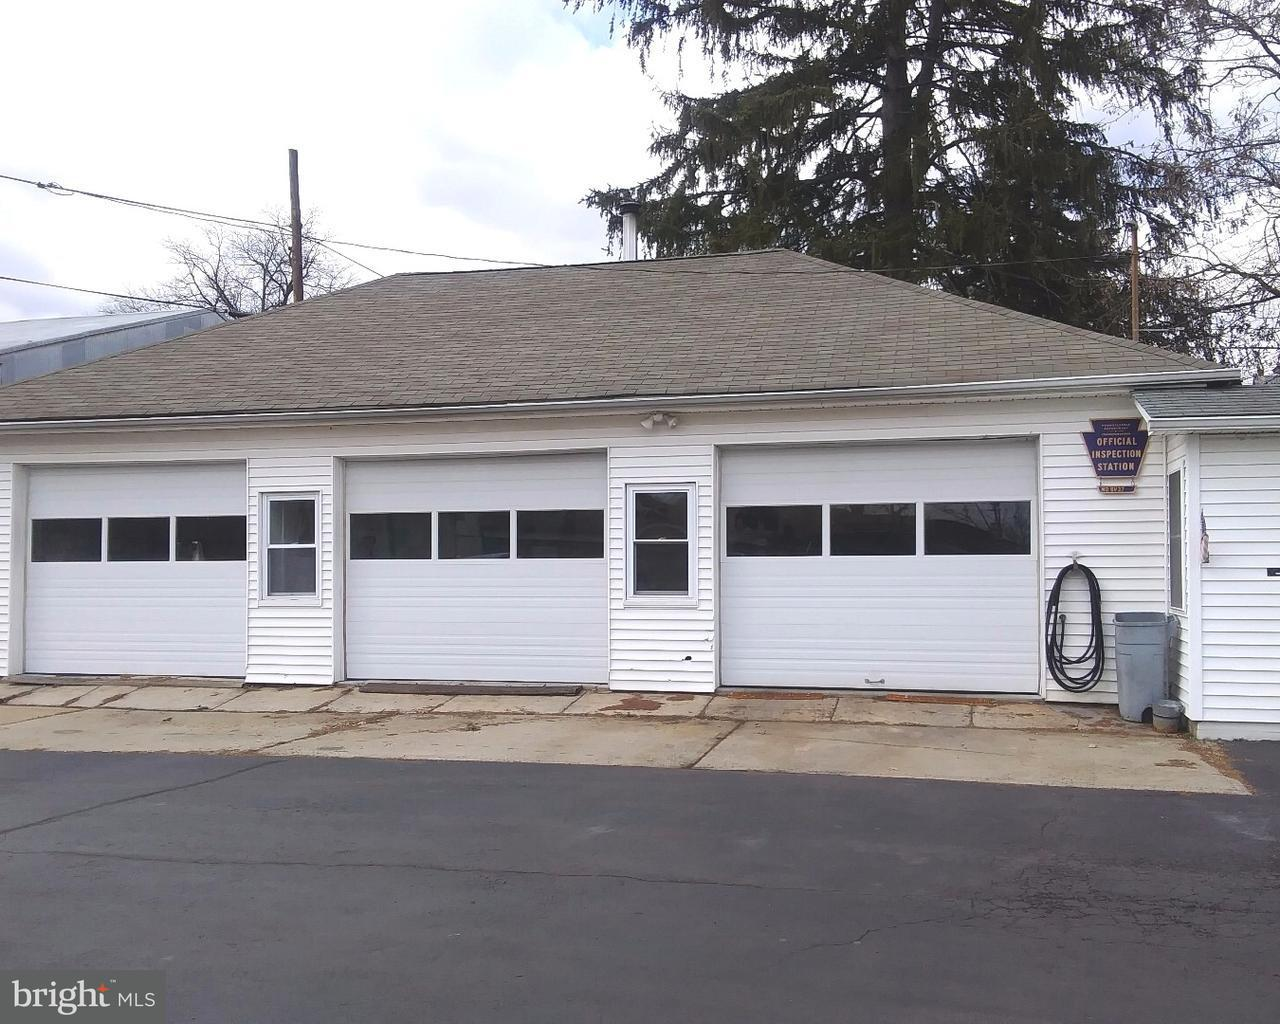 348 E MAIN ST, COLLEGEVILLE - Listed at $1,200, COLLEGEVILLE